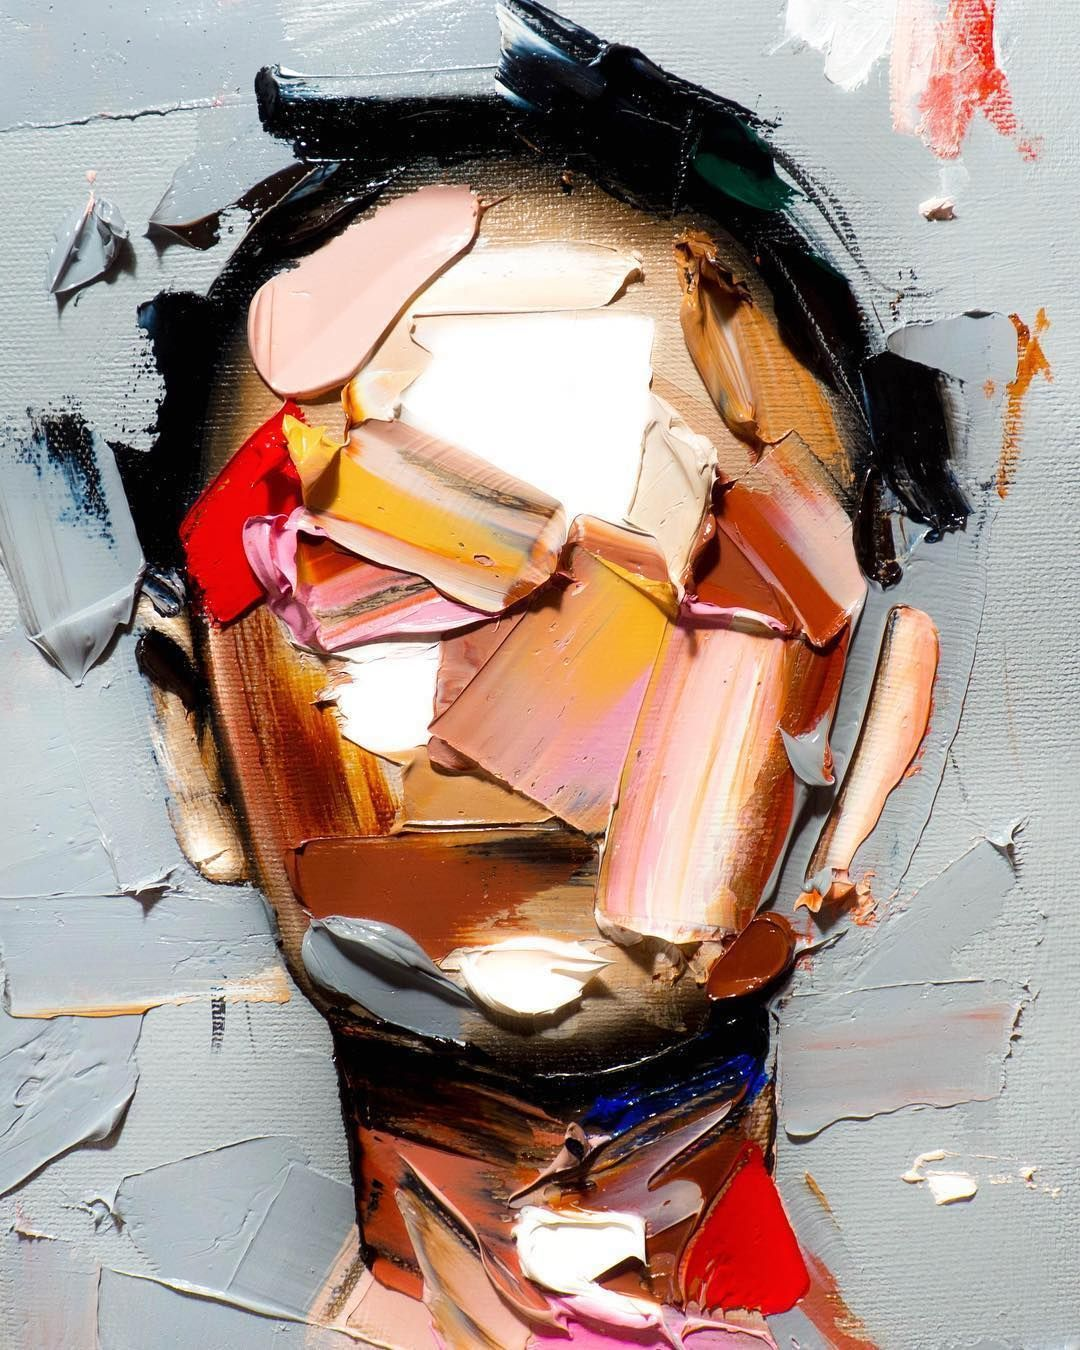 Thick Strokes of Paint Create Featureless Portraits in Abstracted Paintings by Joseph Lee | Colossal #abstractart